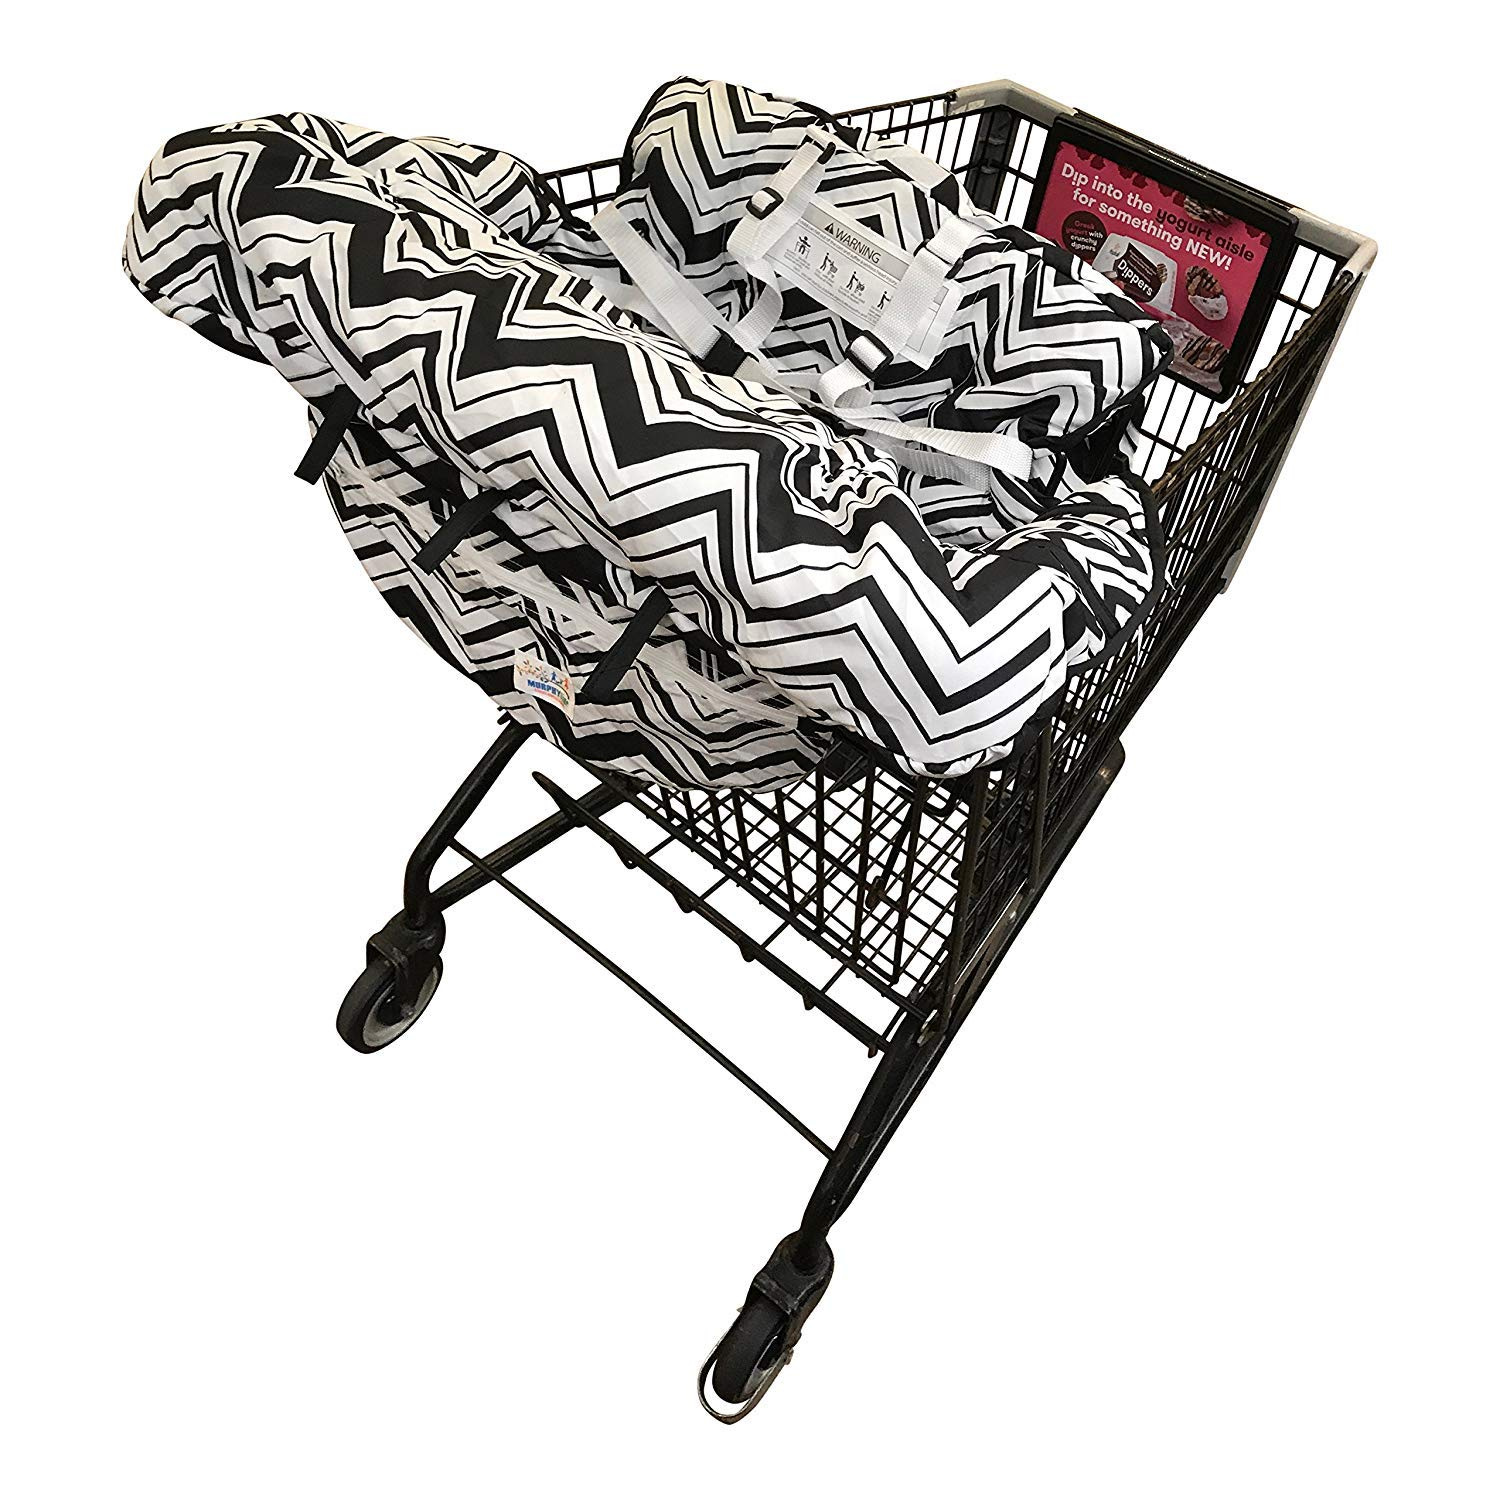 Shopping Cart Cover For Baby- 2-in-1 - Foldable Portable Seat with Bag for Infant to Toddler - Compatible with Grocery Cart Seat and High Chair - ...